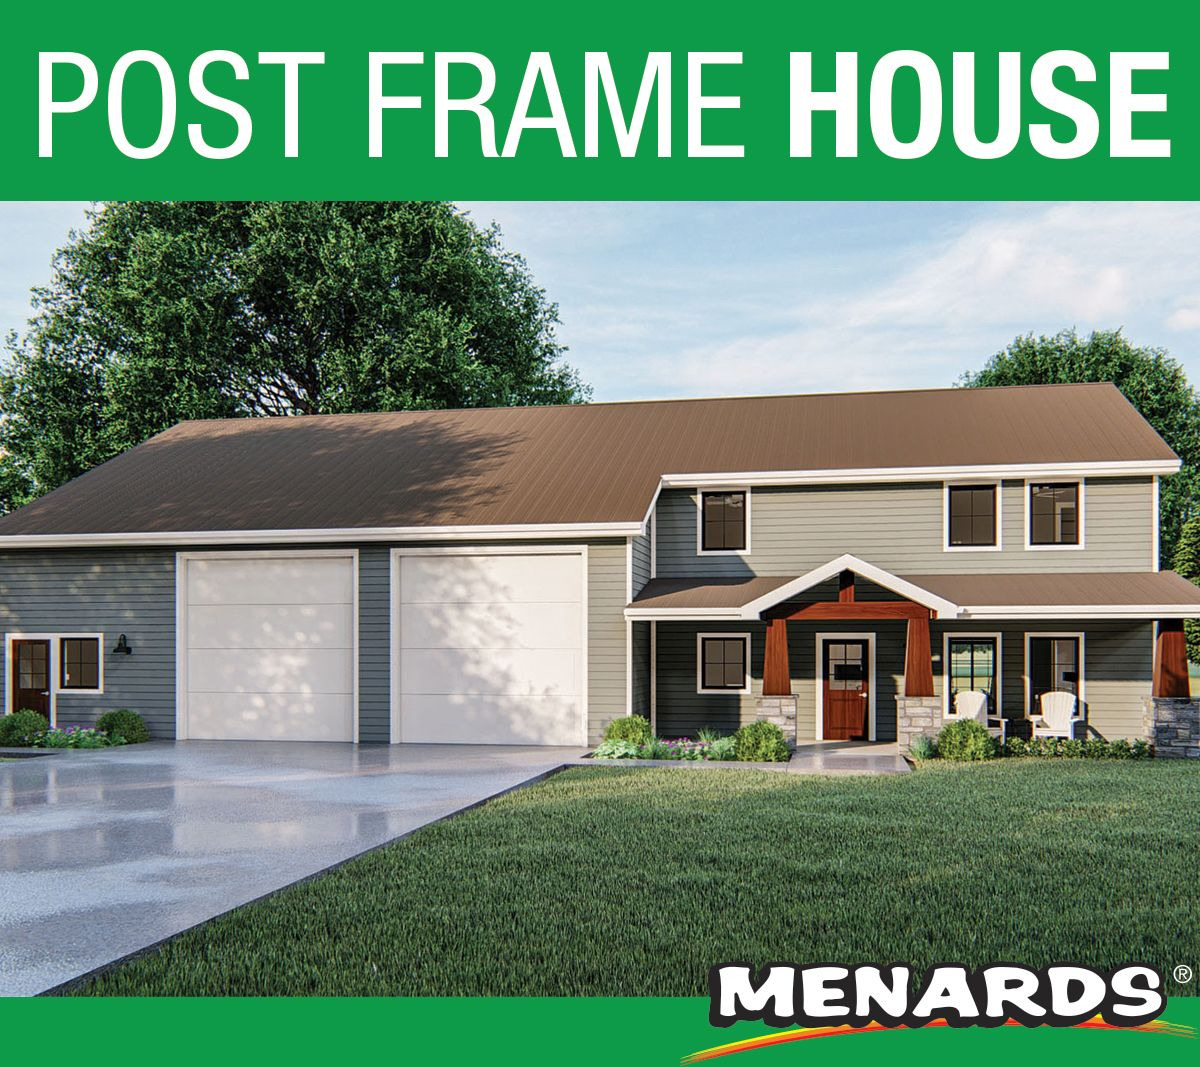 Helena Post Frame Home Material List House Materials Bookshelves Built In Building A House